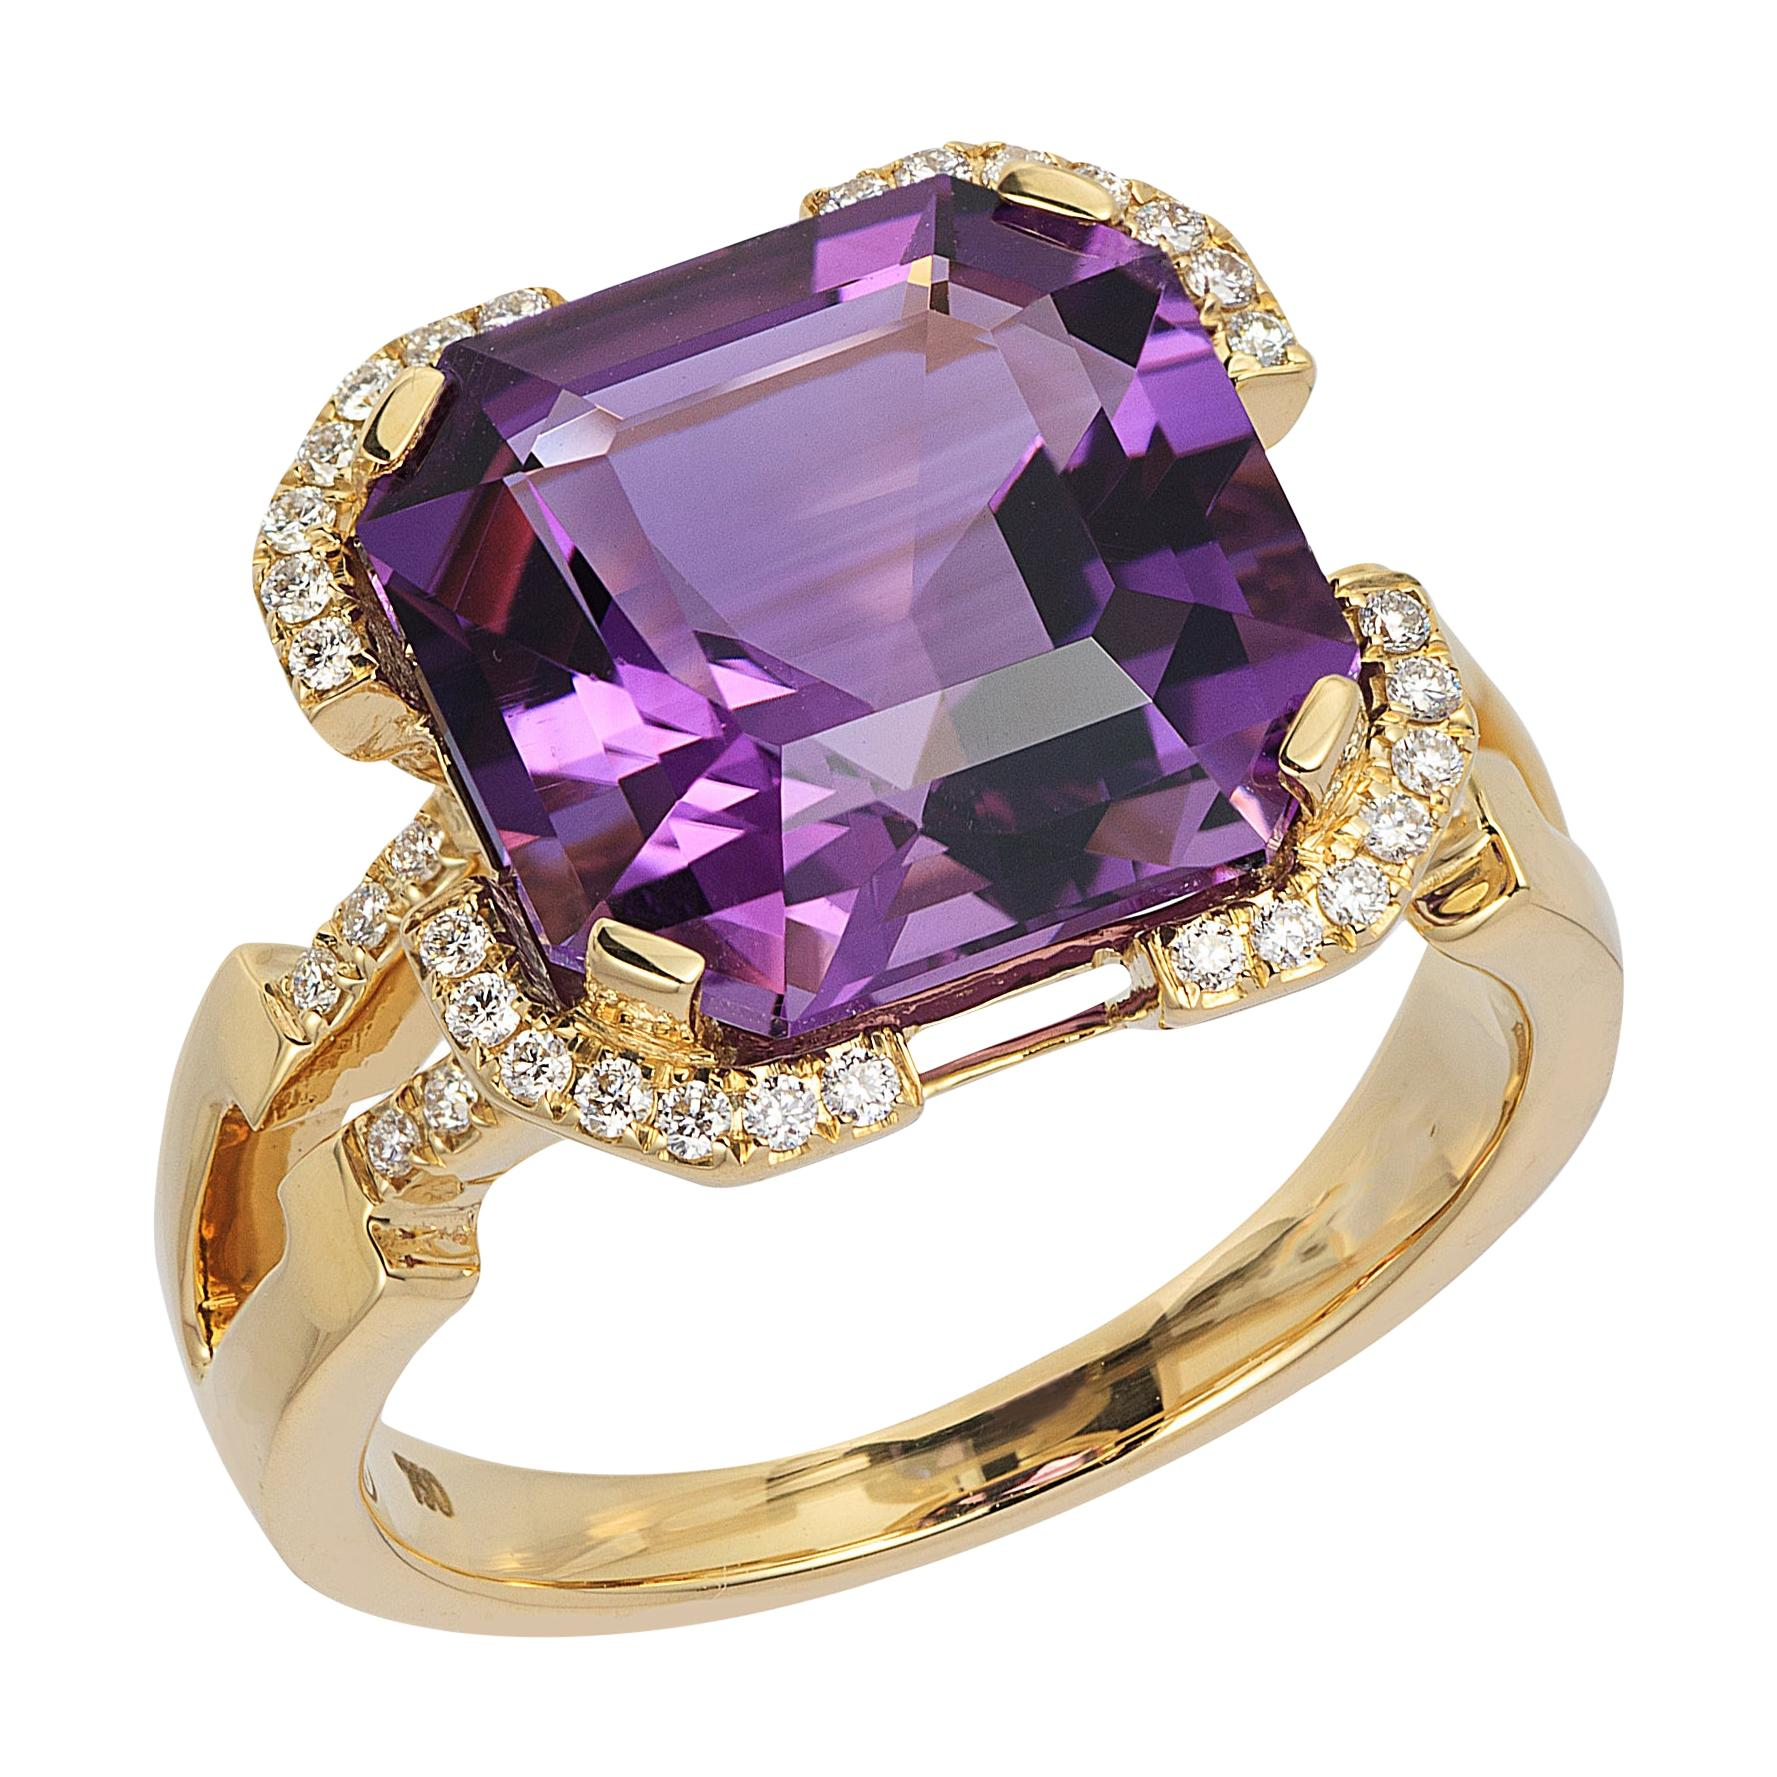 Goshwara Emerald Cut Amethyst And Diamond Ring